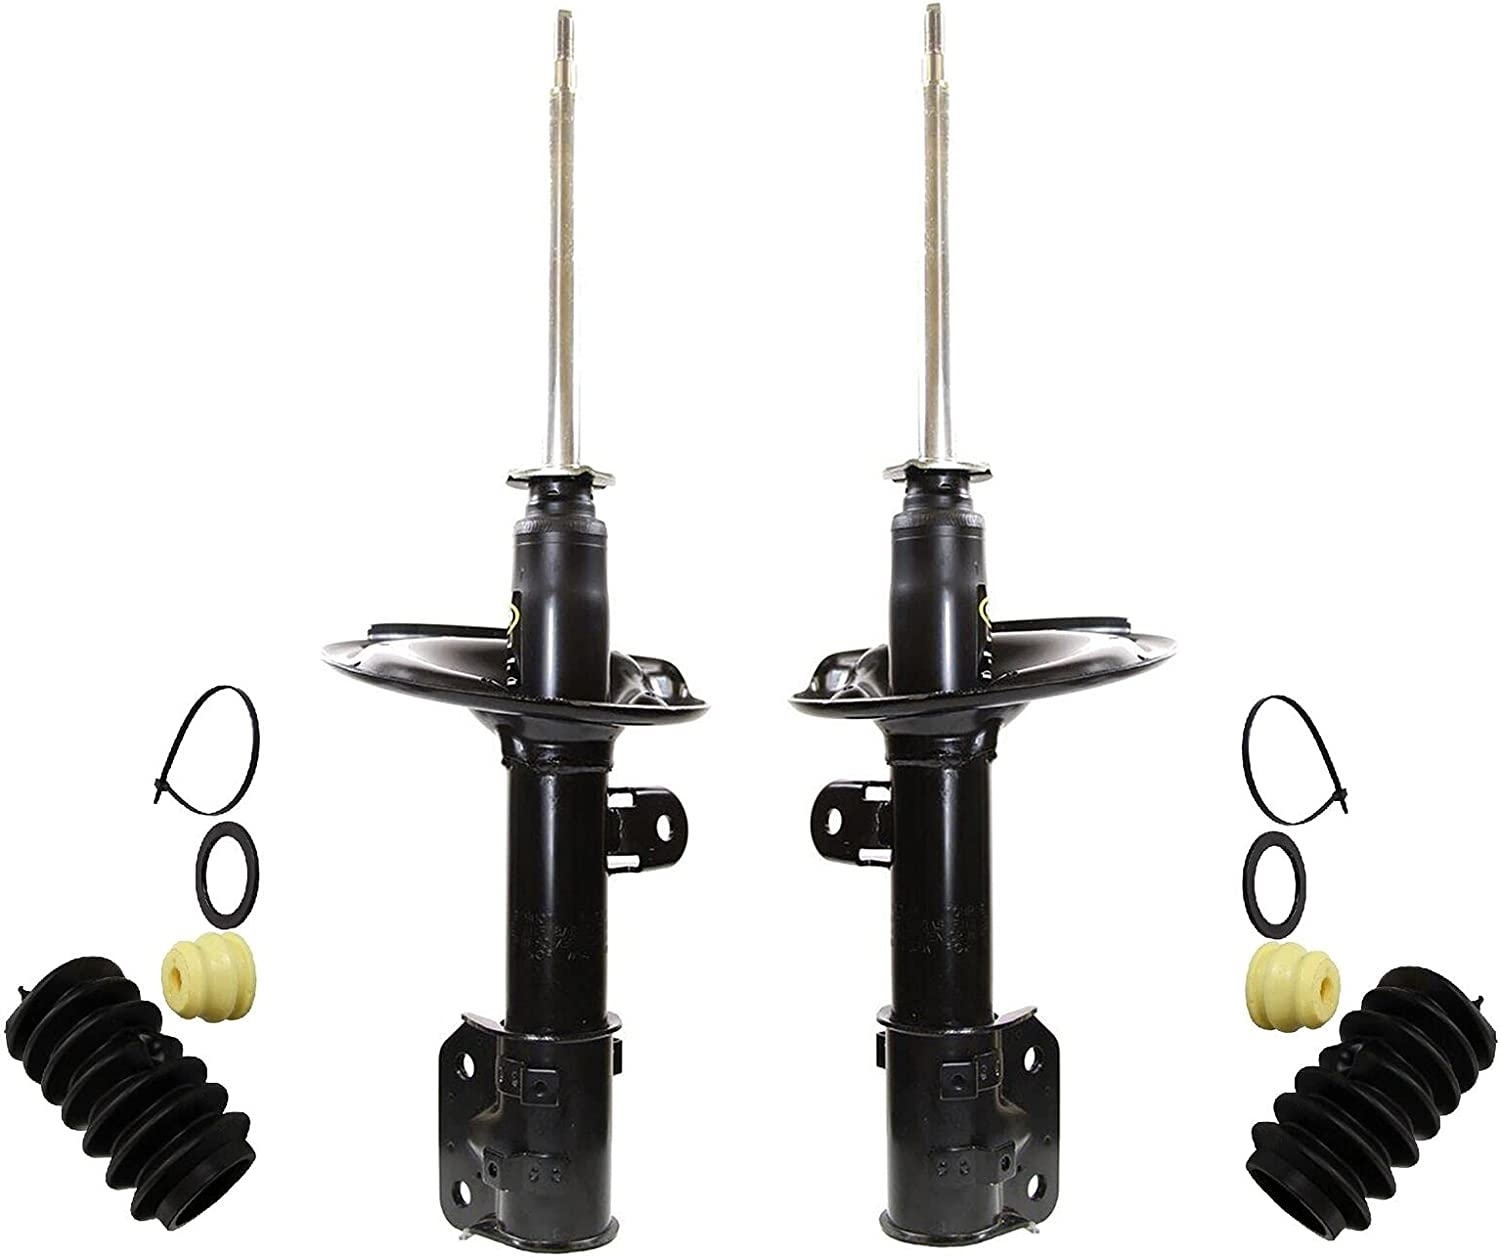 Front Left and Right Super Special SALE held Popular overseas Struts Boot with Kia Sedo Compatible Kits